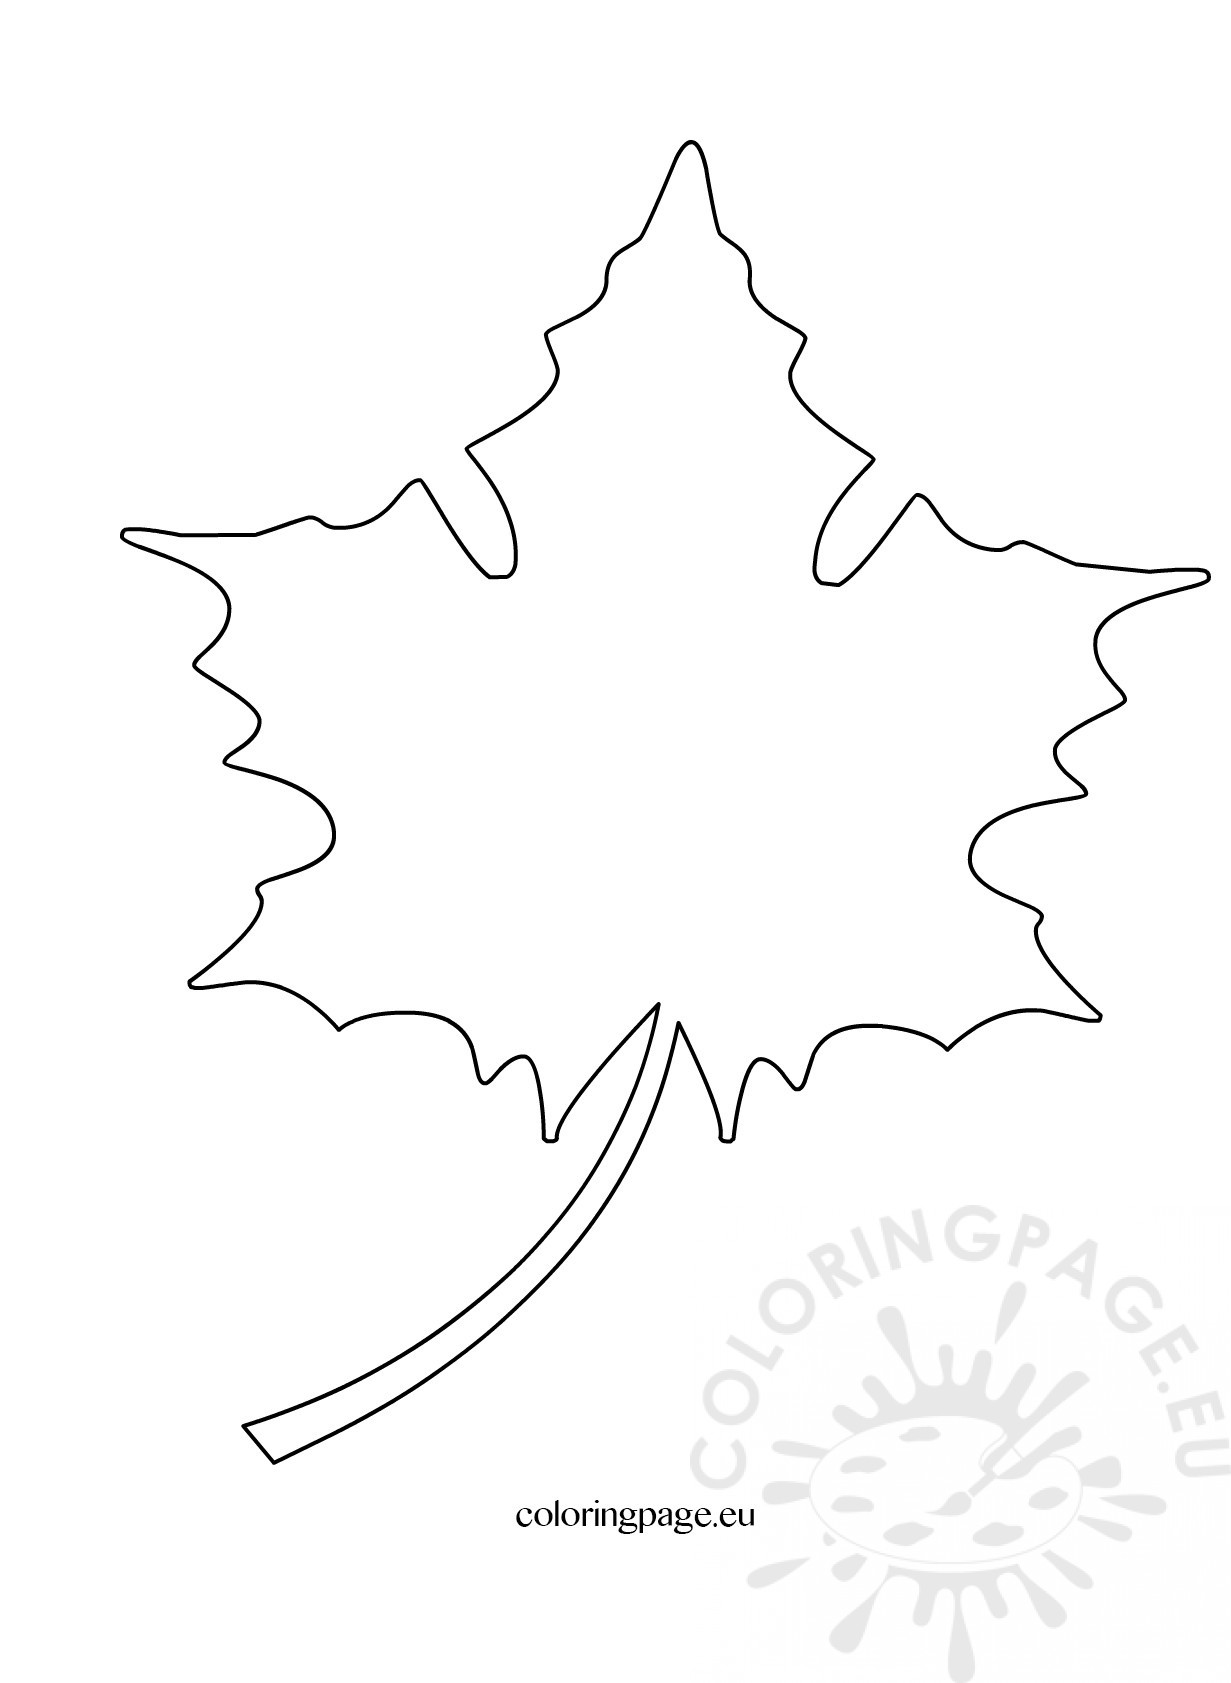 Maple Leaf Cut Out Pattern Coloring Page